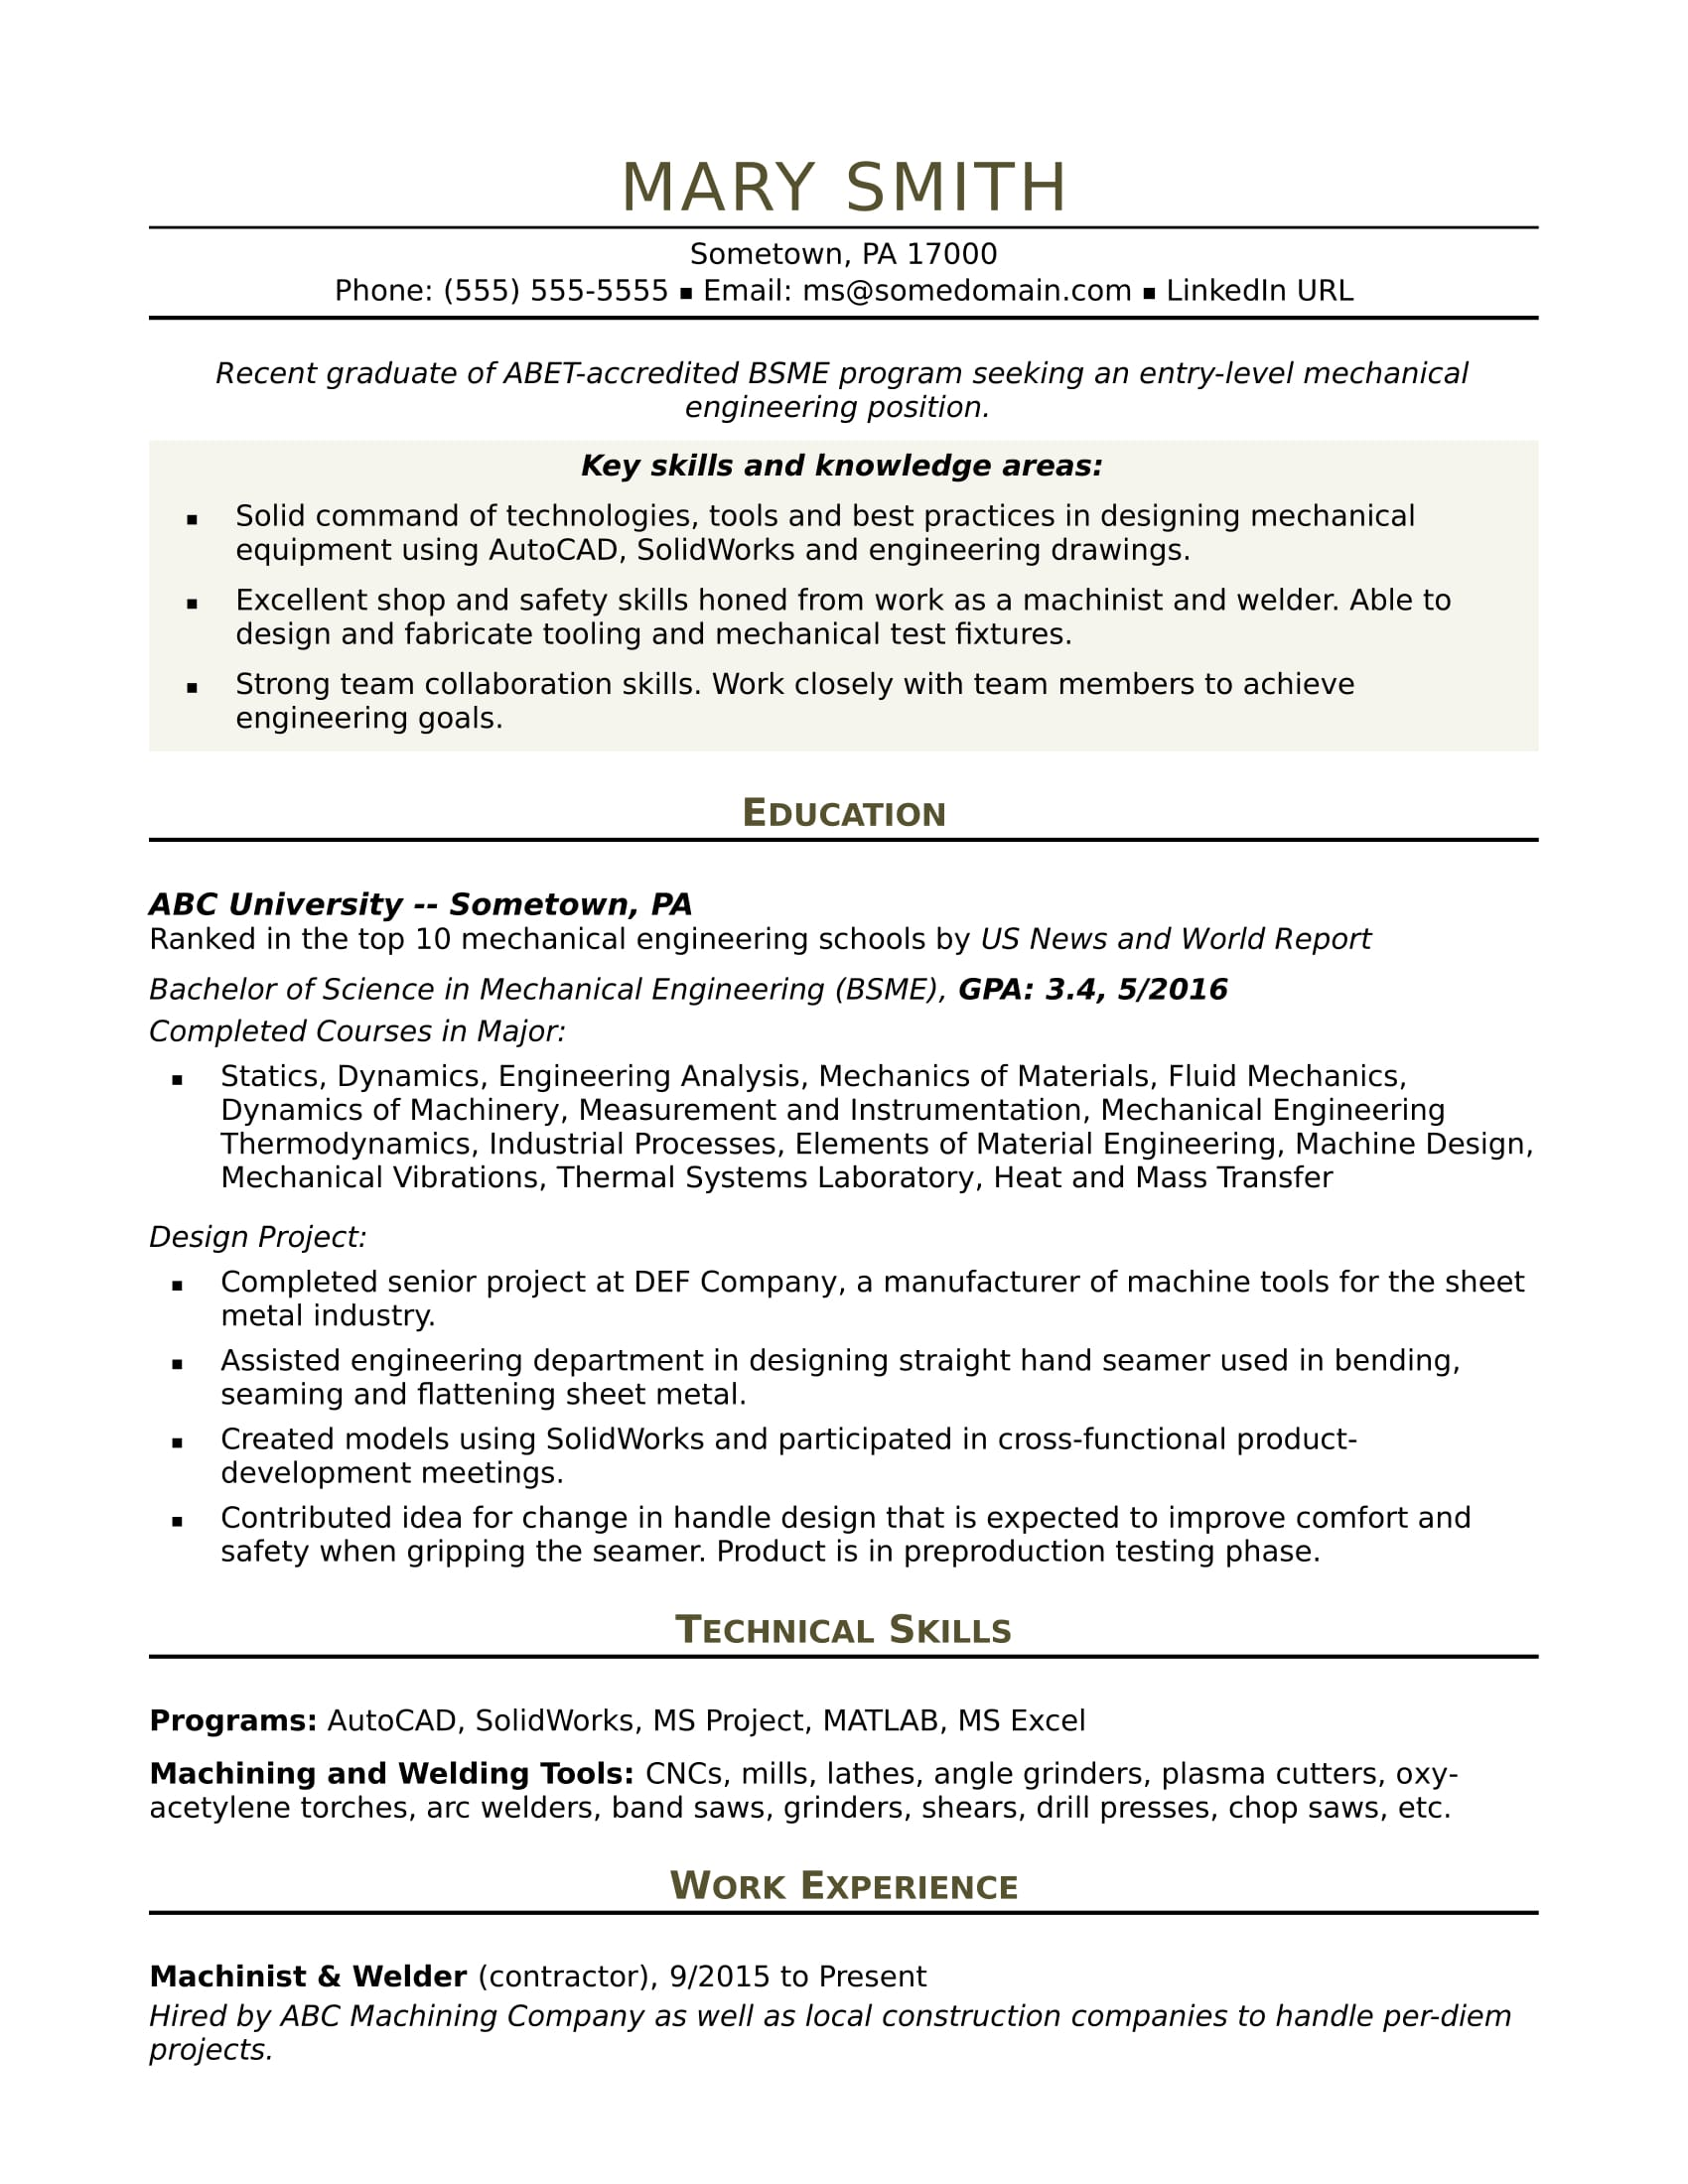 sample resume for an entry level mechanical engineer monster good summary students sap s4 Resume Good Resume Summary For Students